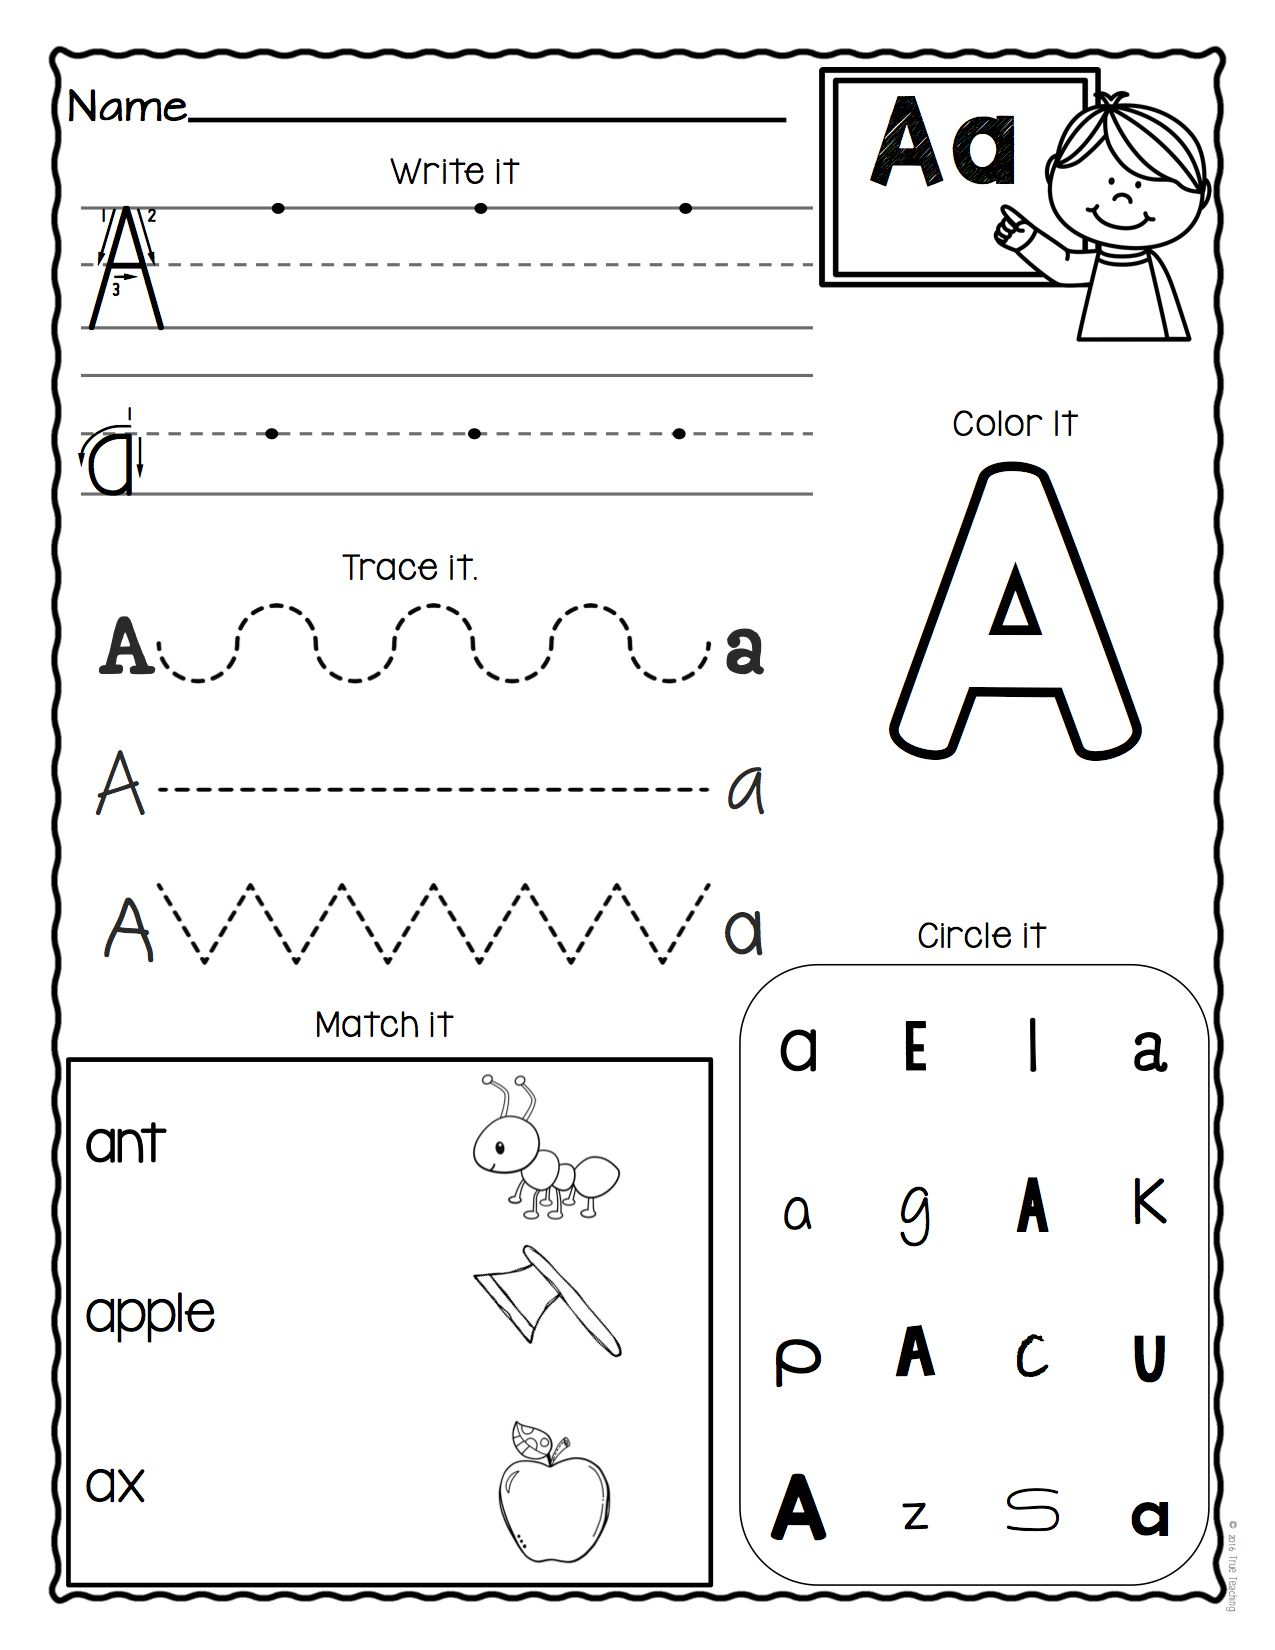 Kids Sheets Free Pre K Age Learning Number Sheet Maths for Alphabet Worksheets Pre K